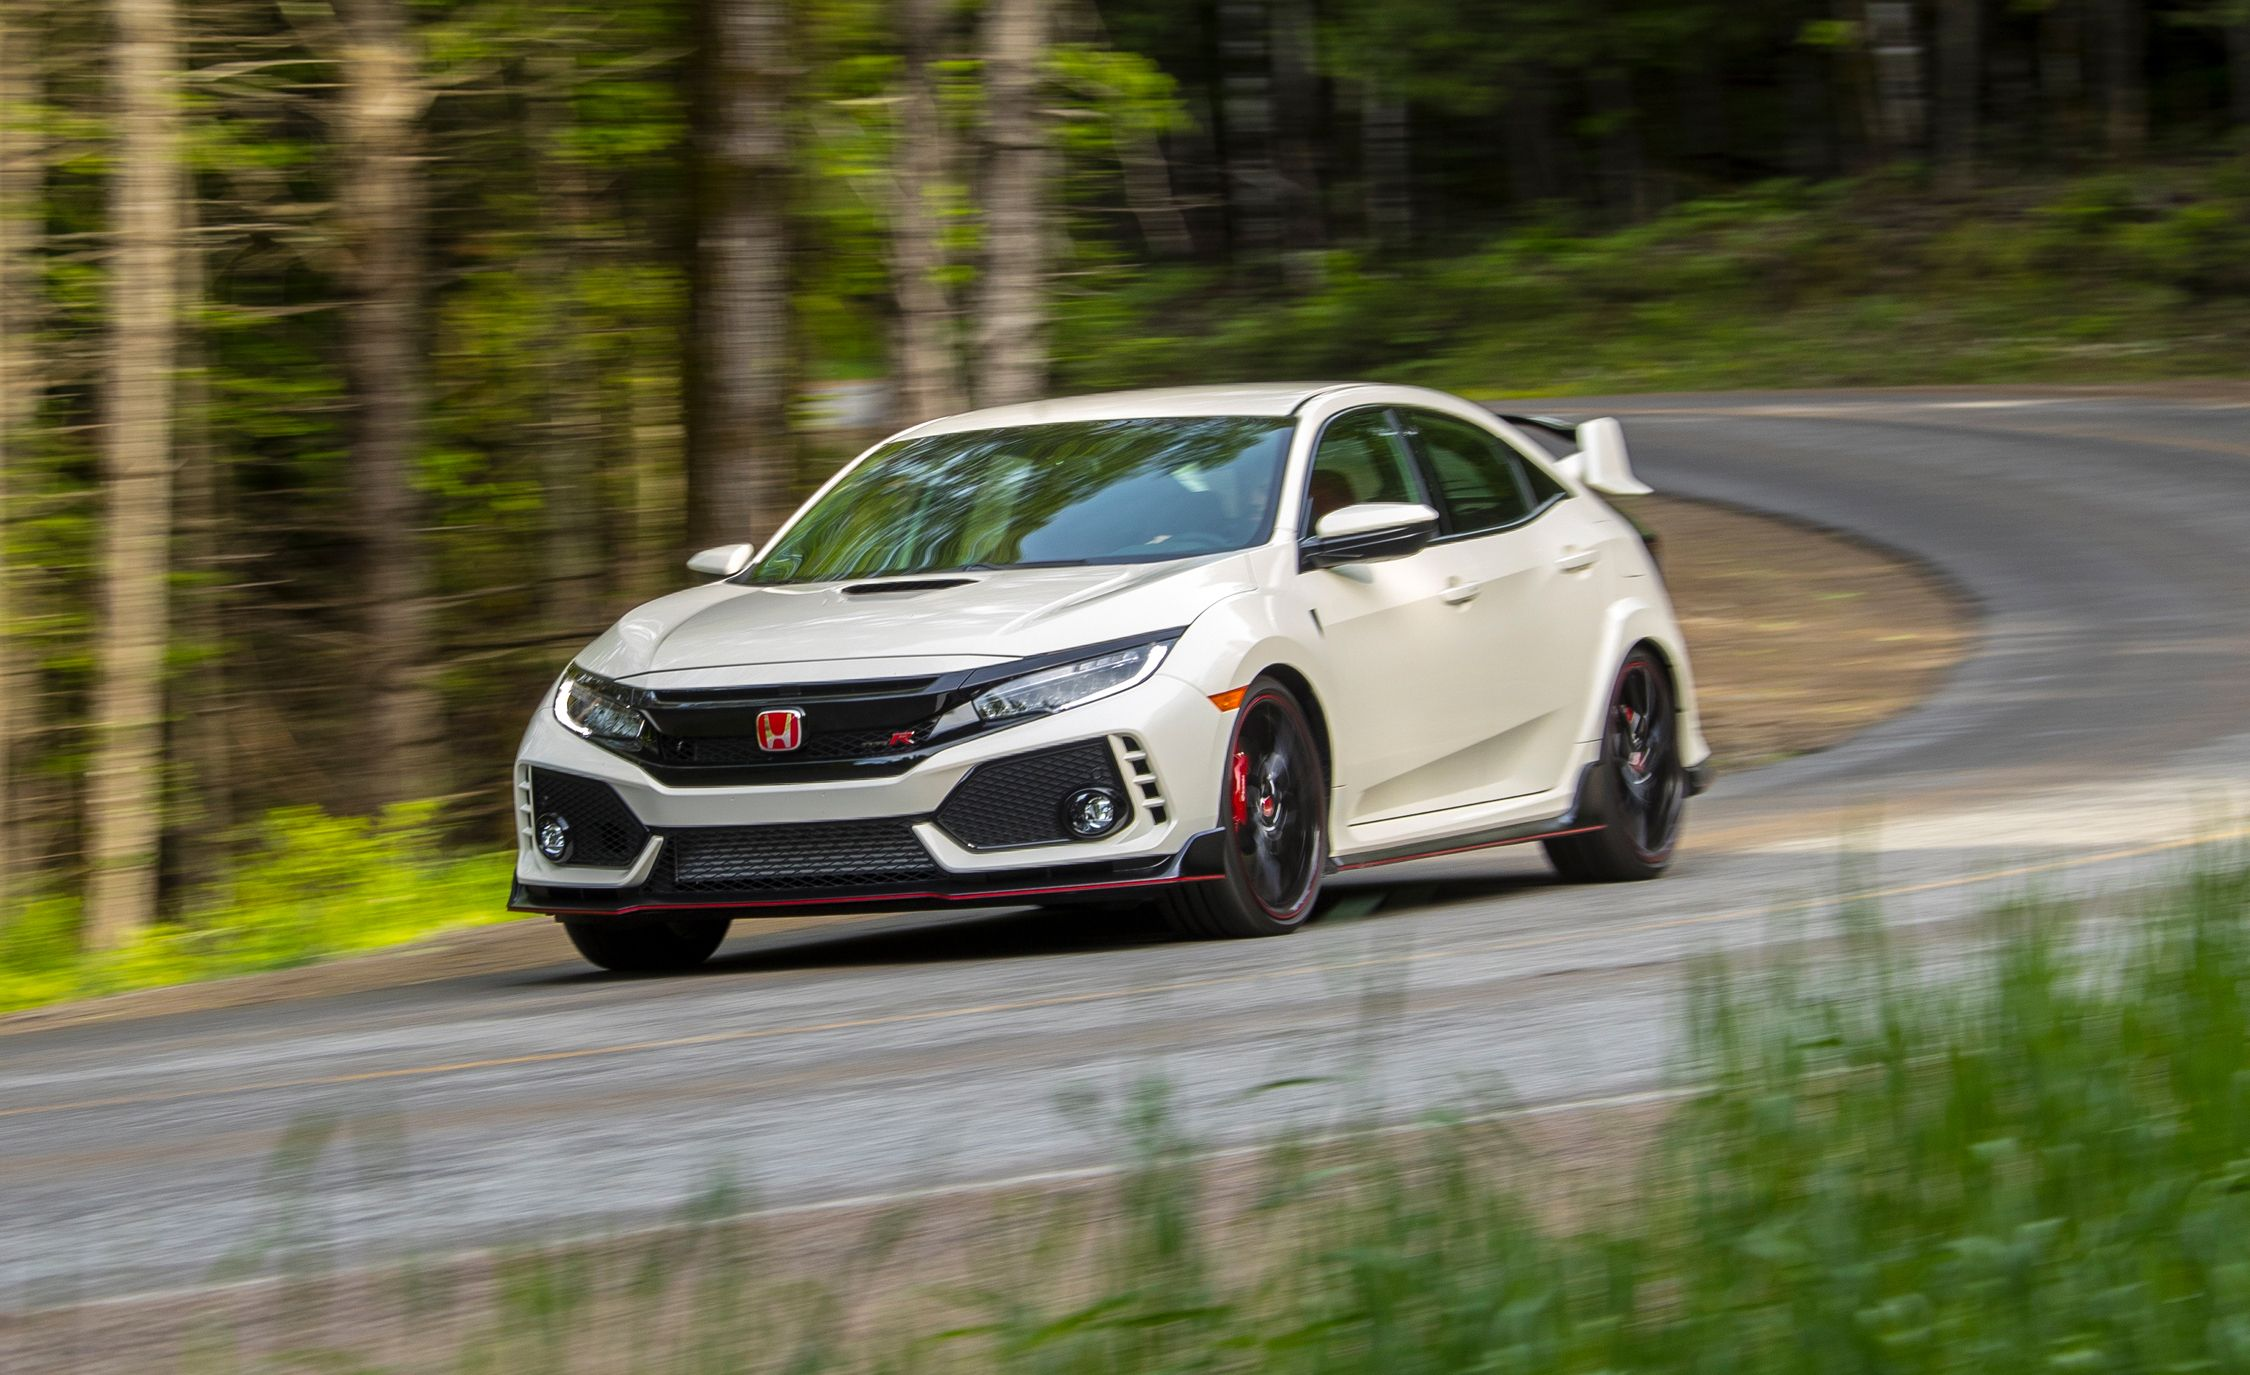 ... 2017 honda civic type r - 2017 honda civic type r first drive review  car and